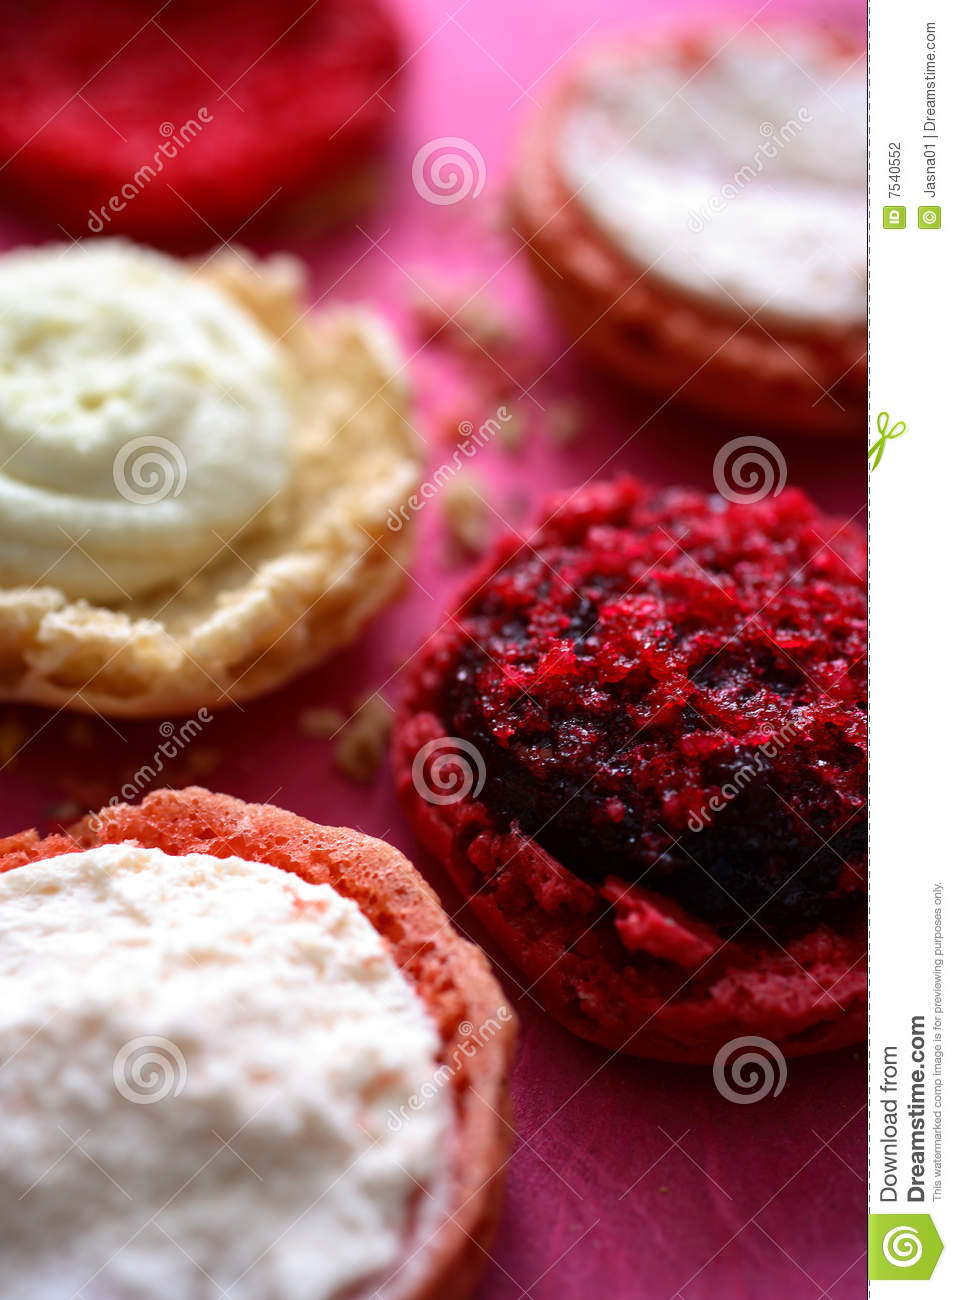 Macaroon Filling On Round Pastry Stock Photo - Image of ...